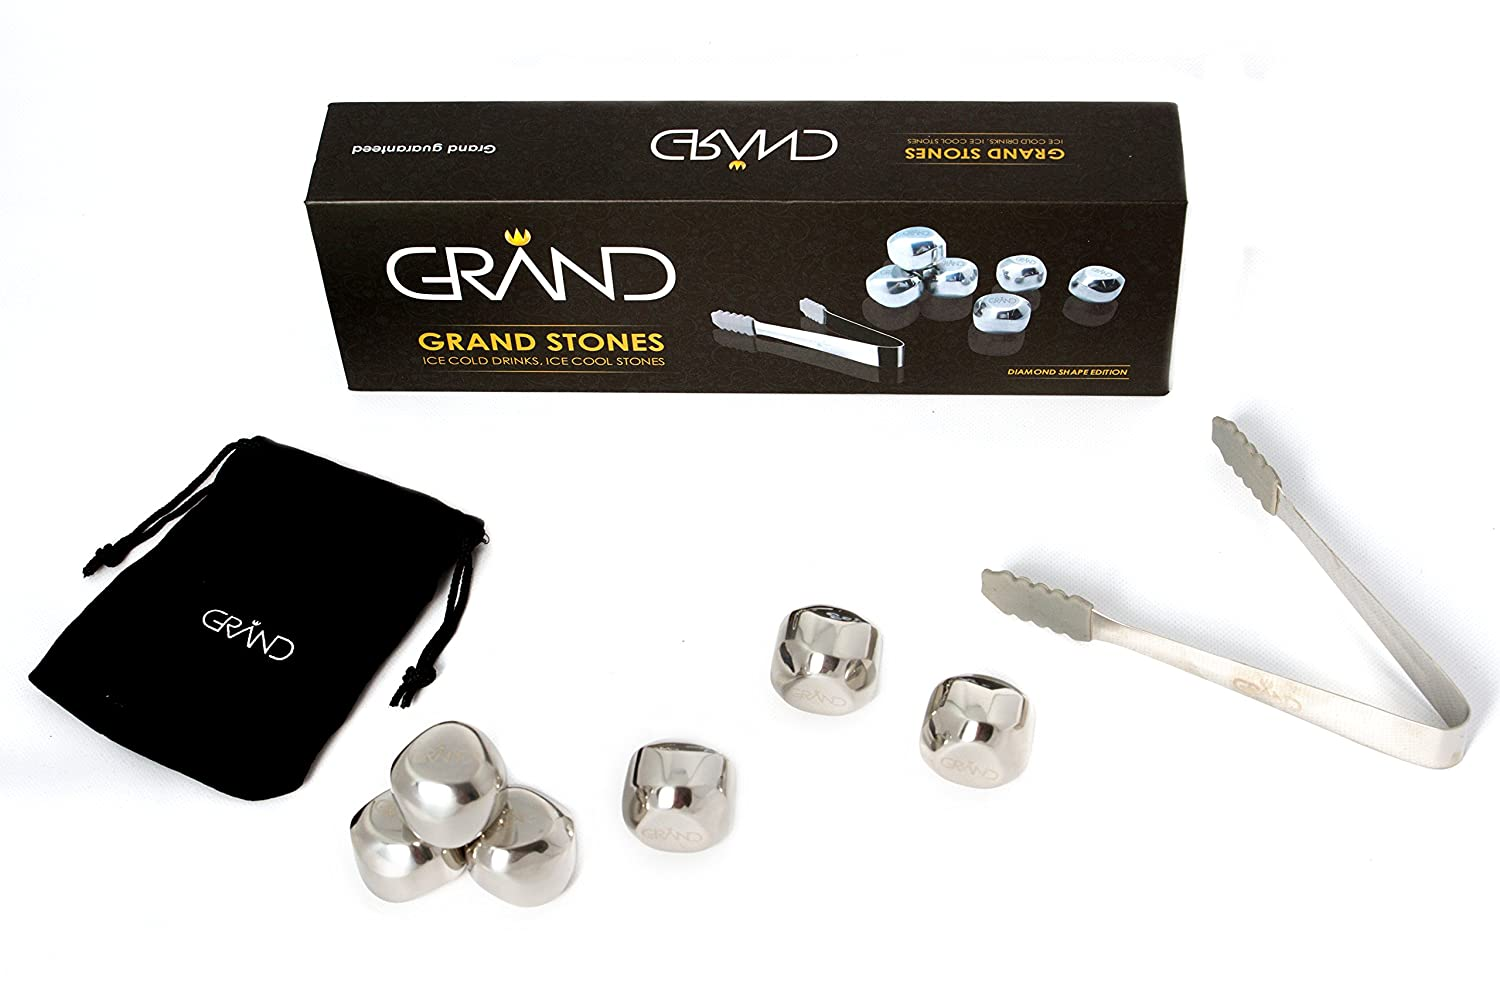 Whisky Stones Gift Set - 6 Reusable Food Grade Stainless Steel Ice ...